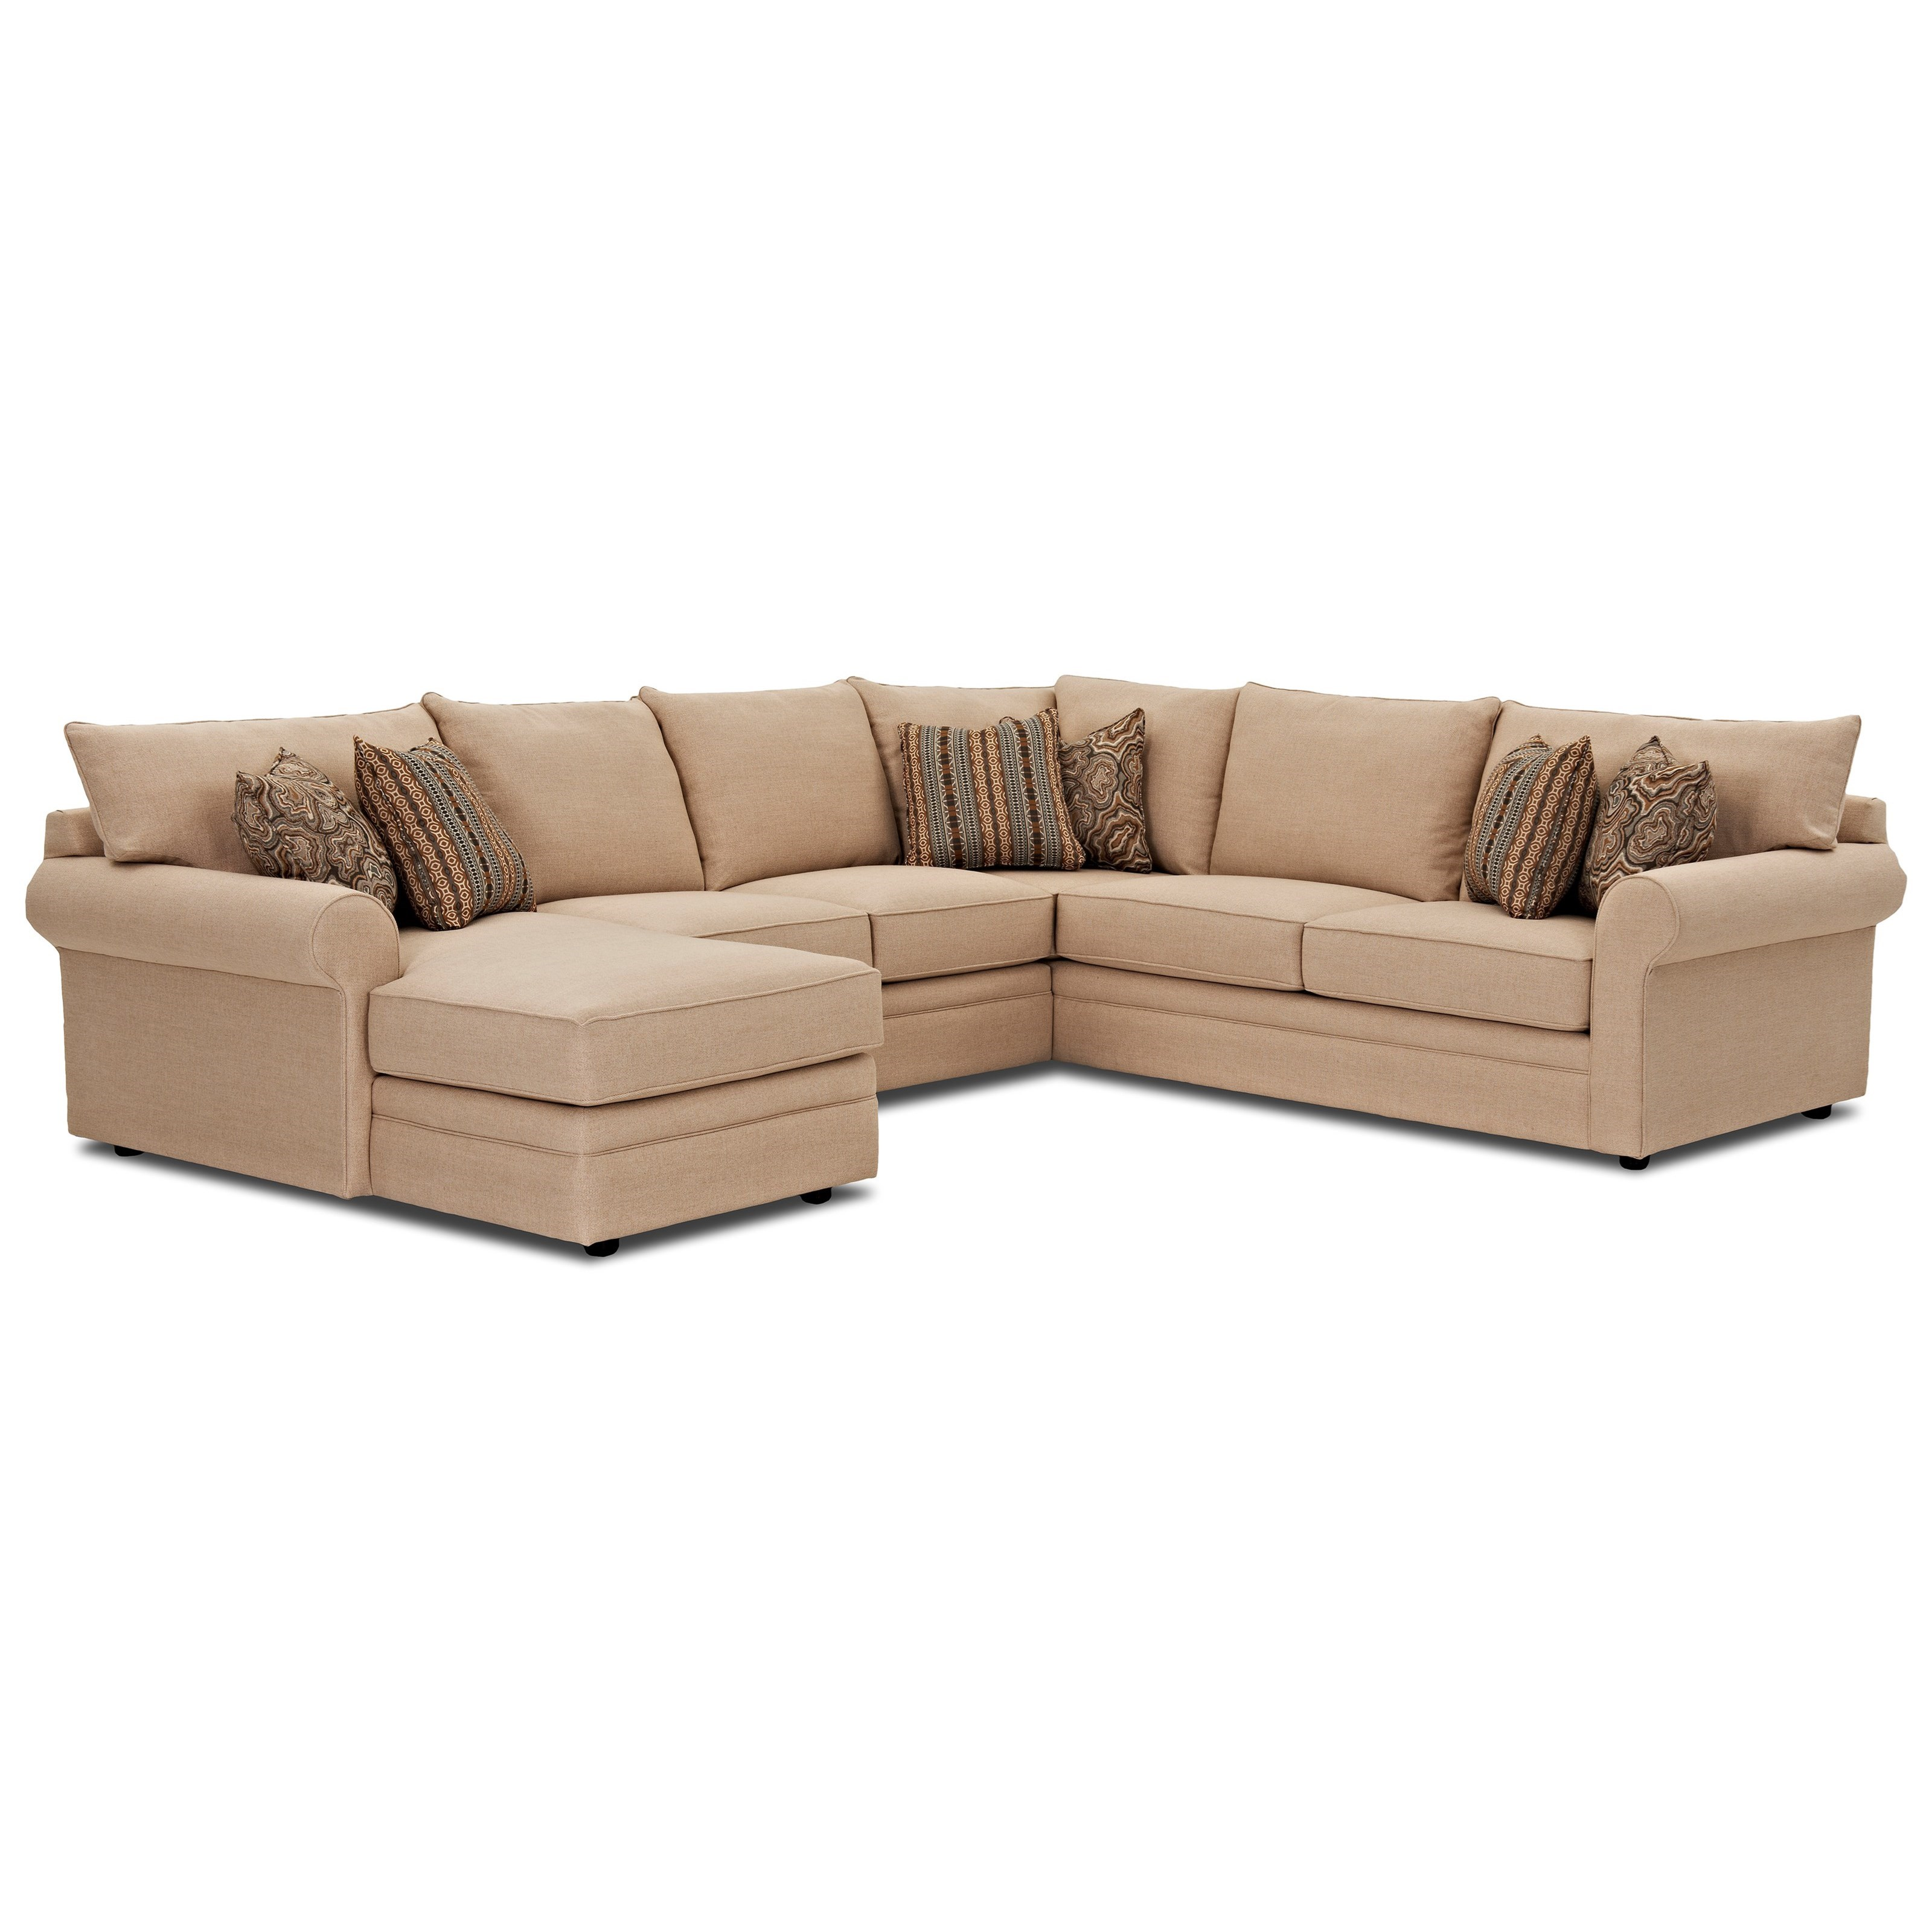 Sectional Sofa w/ LAF Chaise